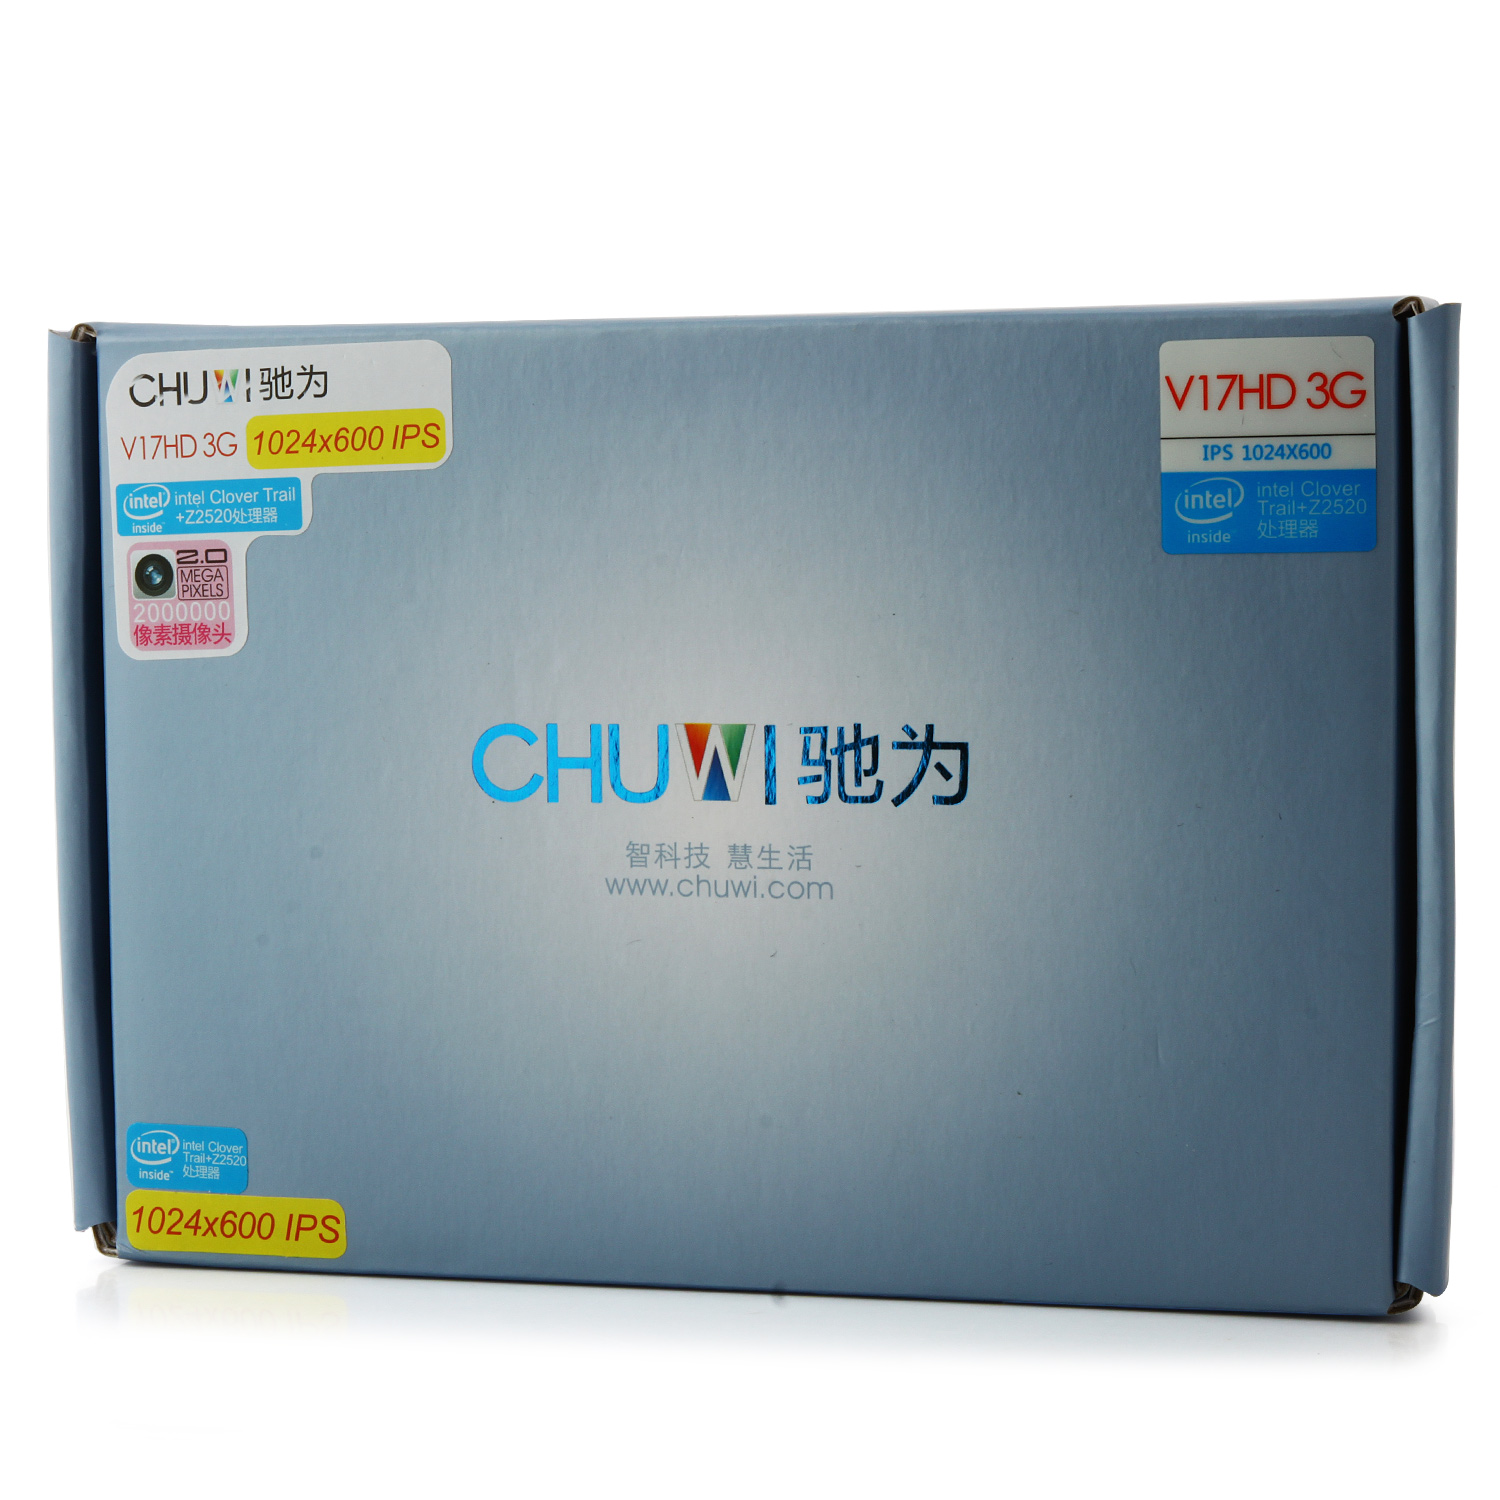 CHUWI V17HD 3G Tablet PC Intel Z2520 7.0 Inch Android 4.2 IPS Screen 8GB White